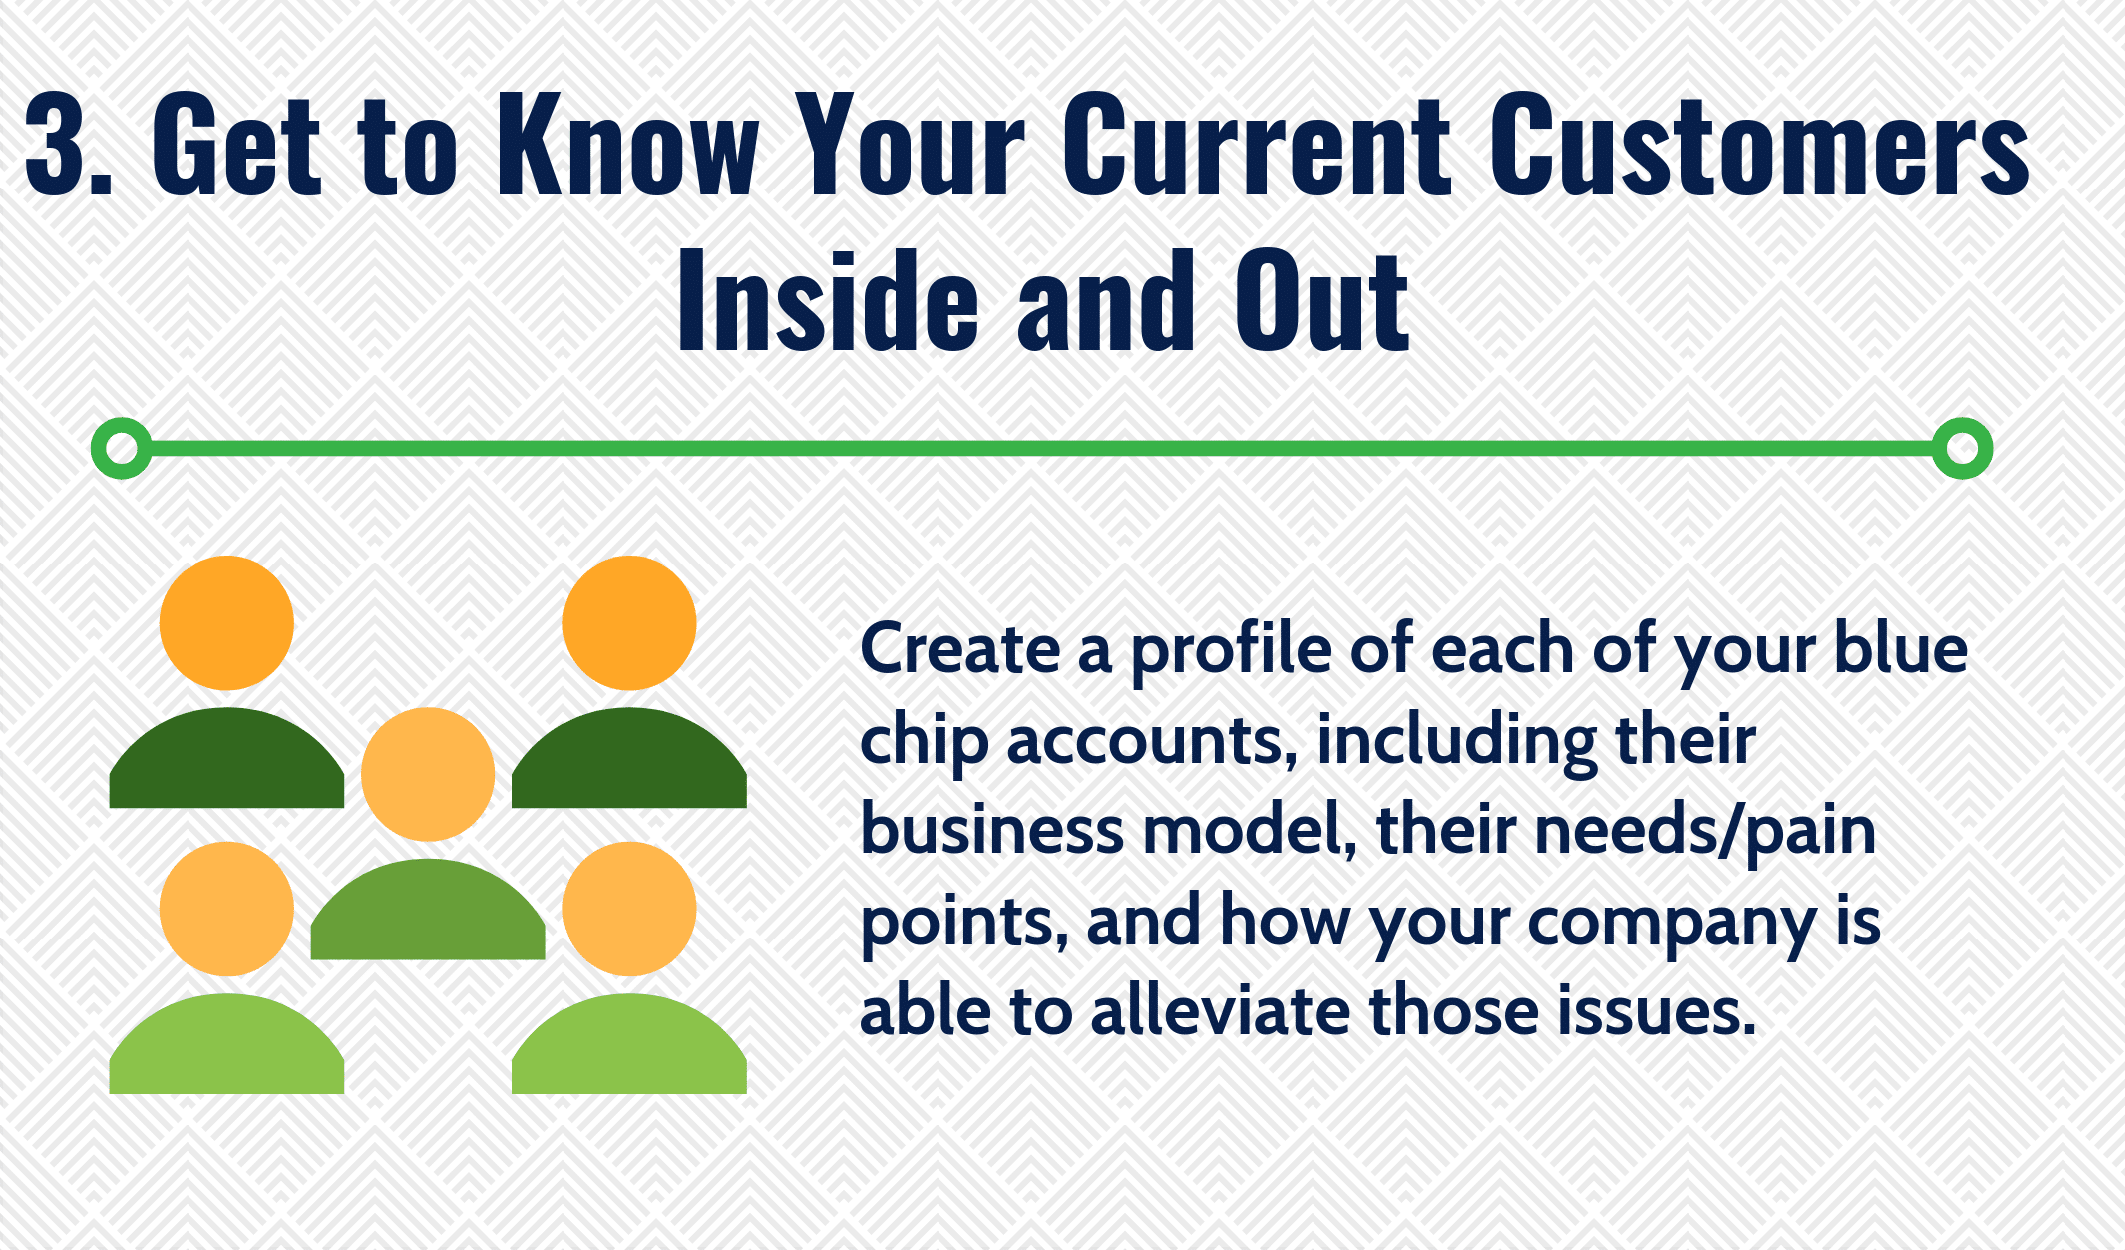 Get to Know Your Current Customers Inside and Out